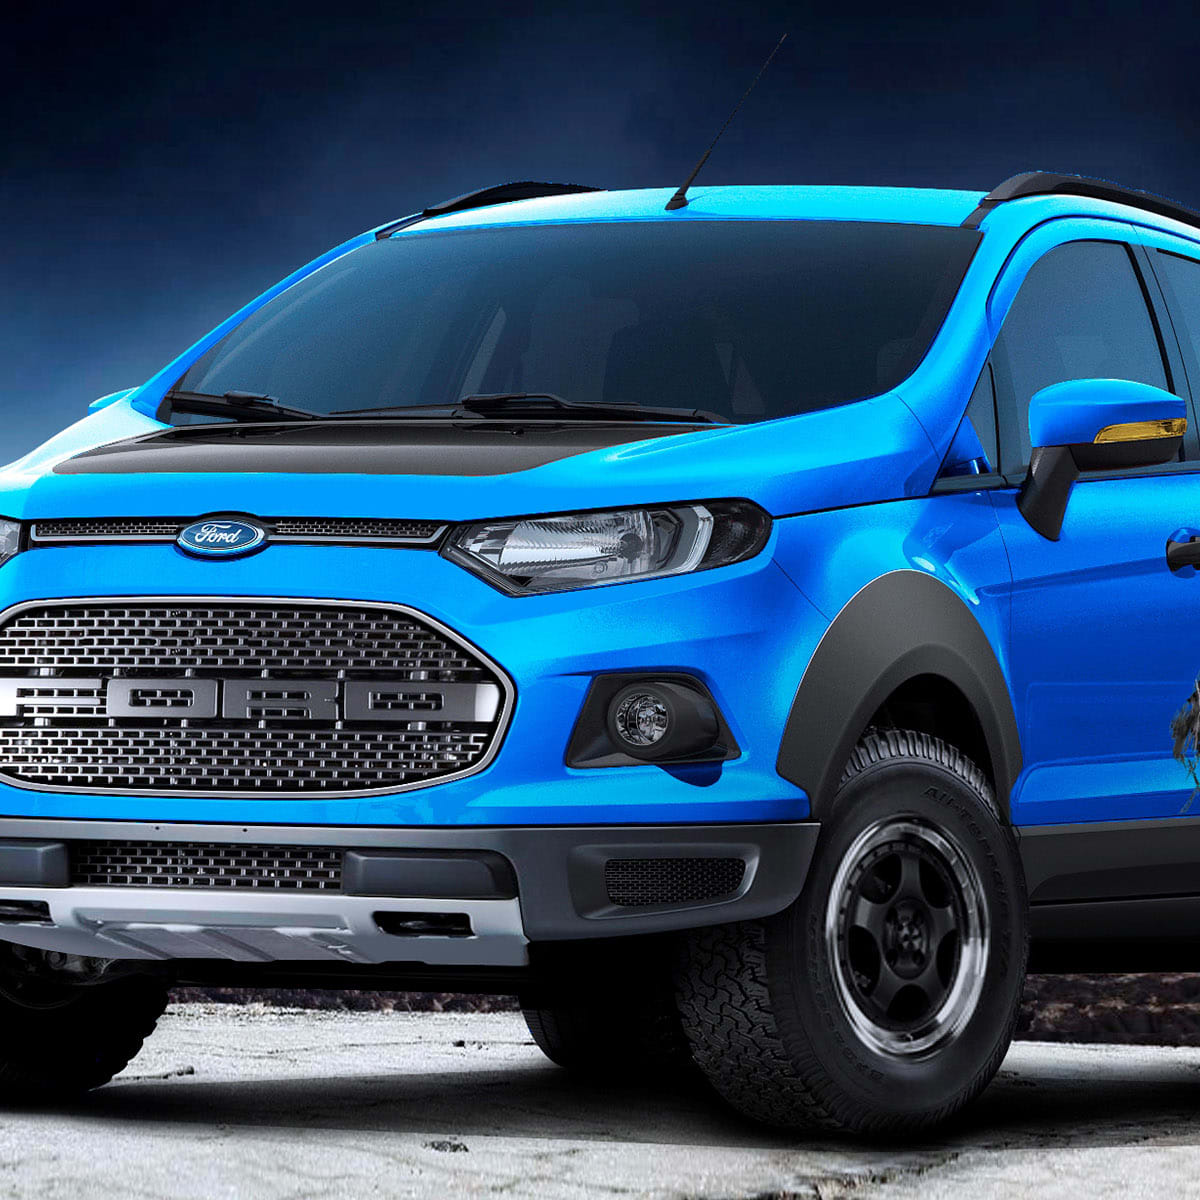 Ford Ecosport Beauty The Beast And Storm Concepts Head To Sao Paulo